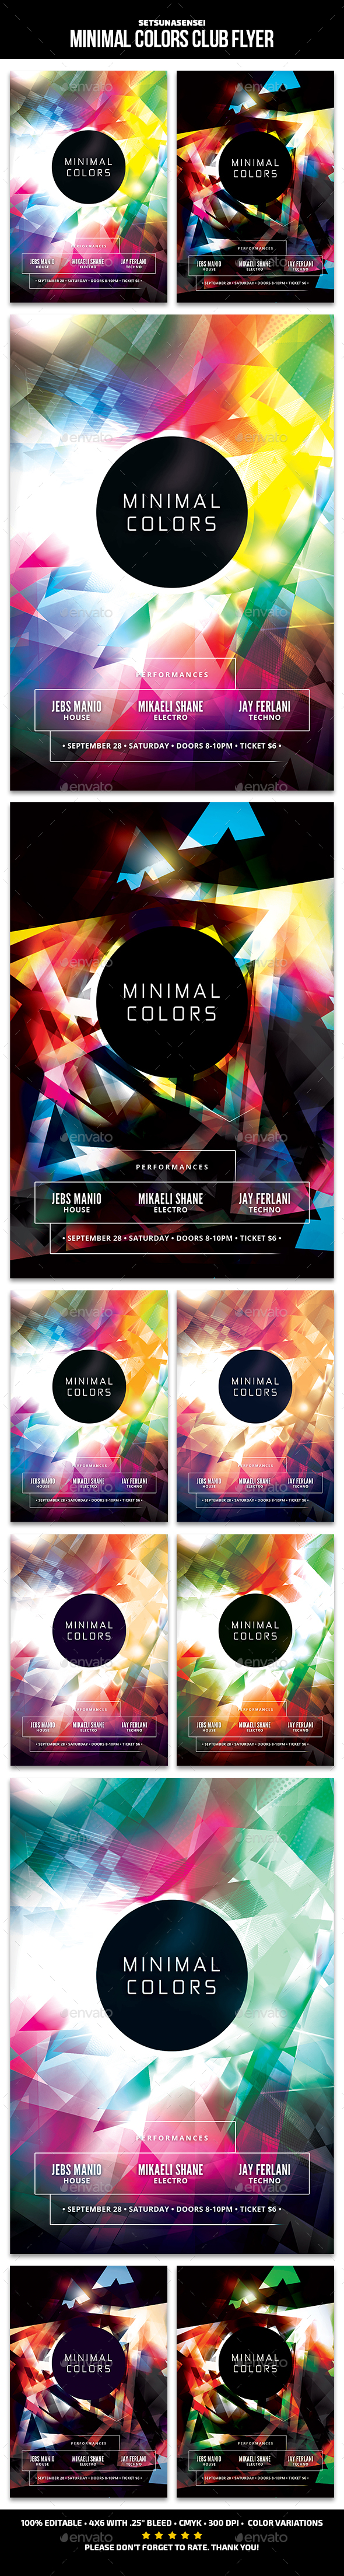 Minimal Colors Club Flyer - Clubs & Parties Events